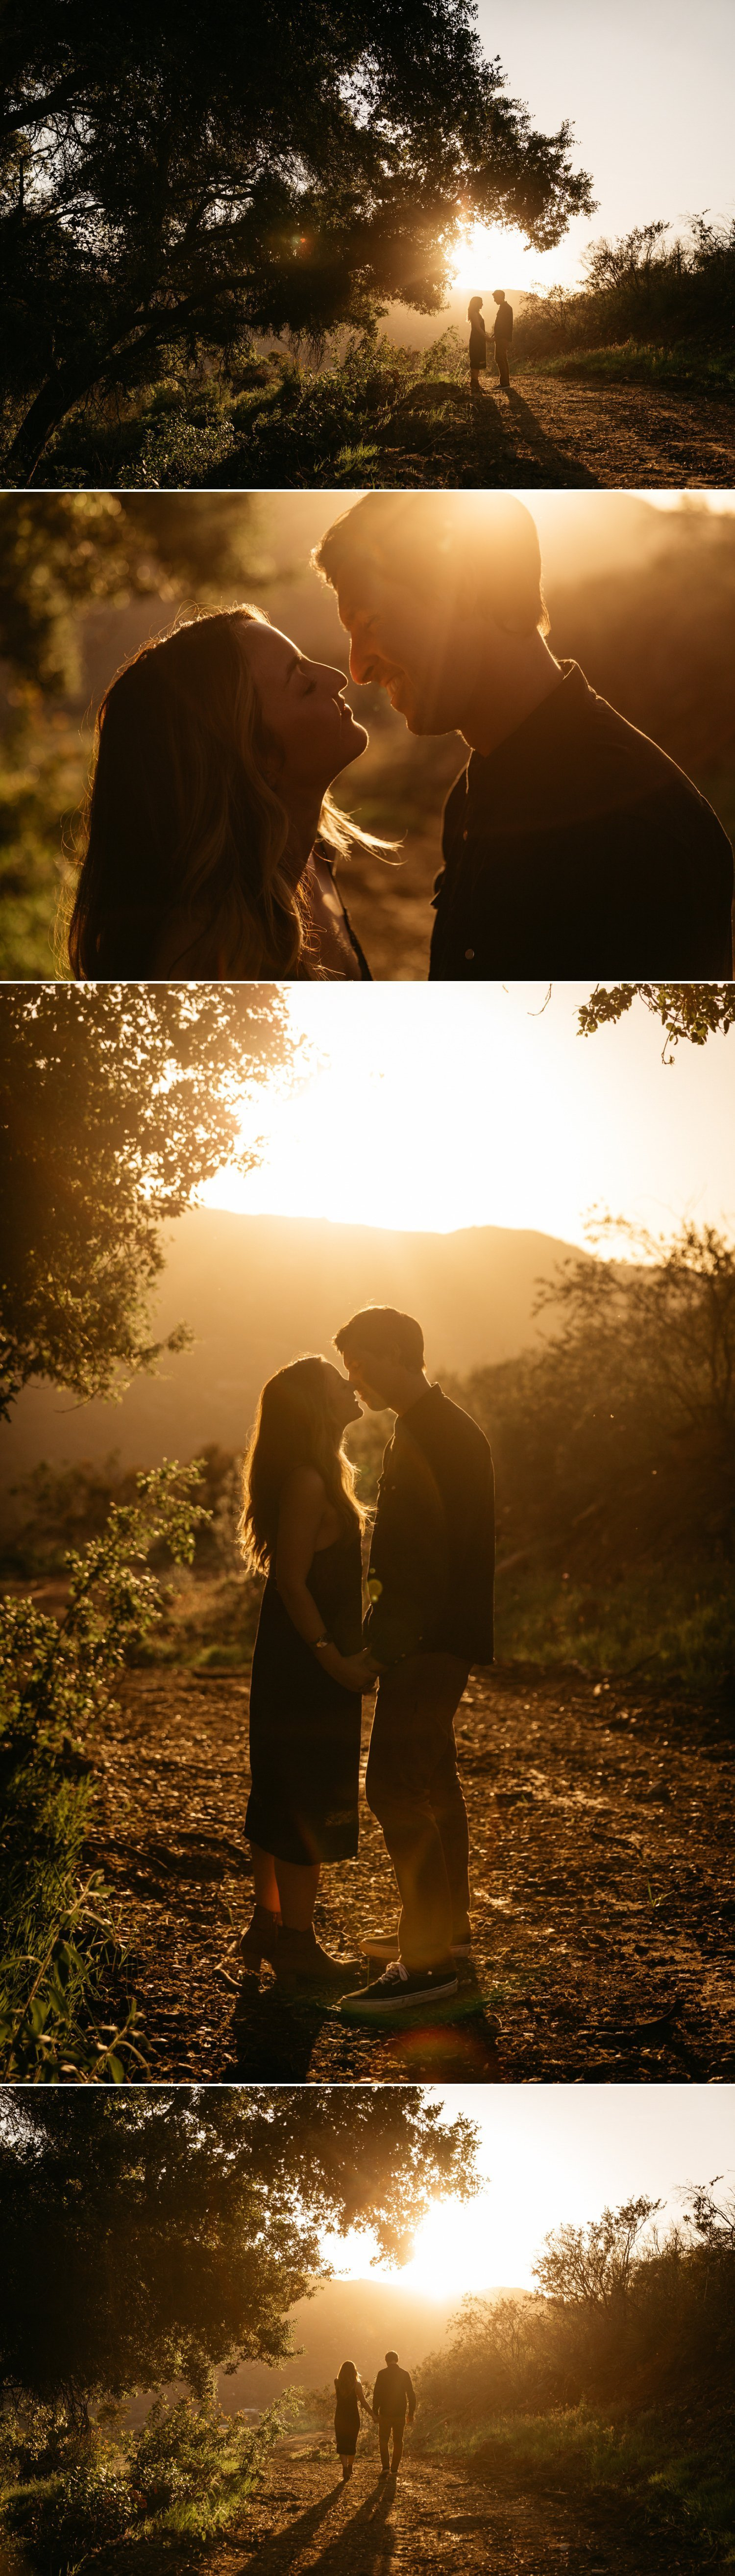 Temecula wedding photographer Paige Nelson